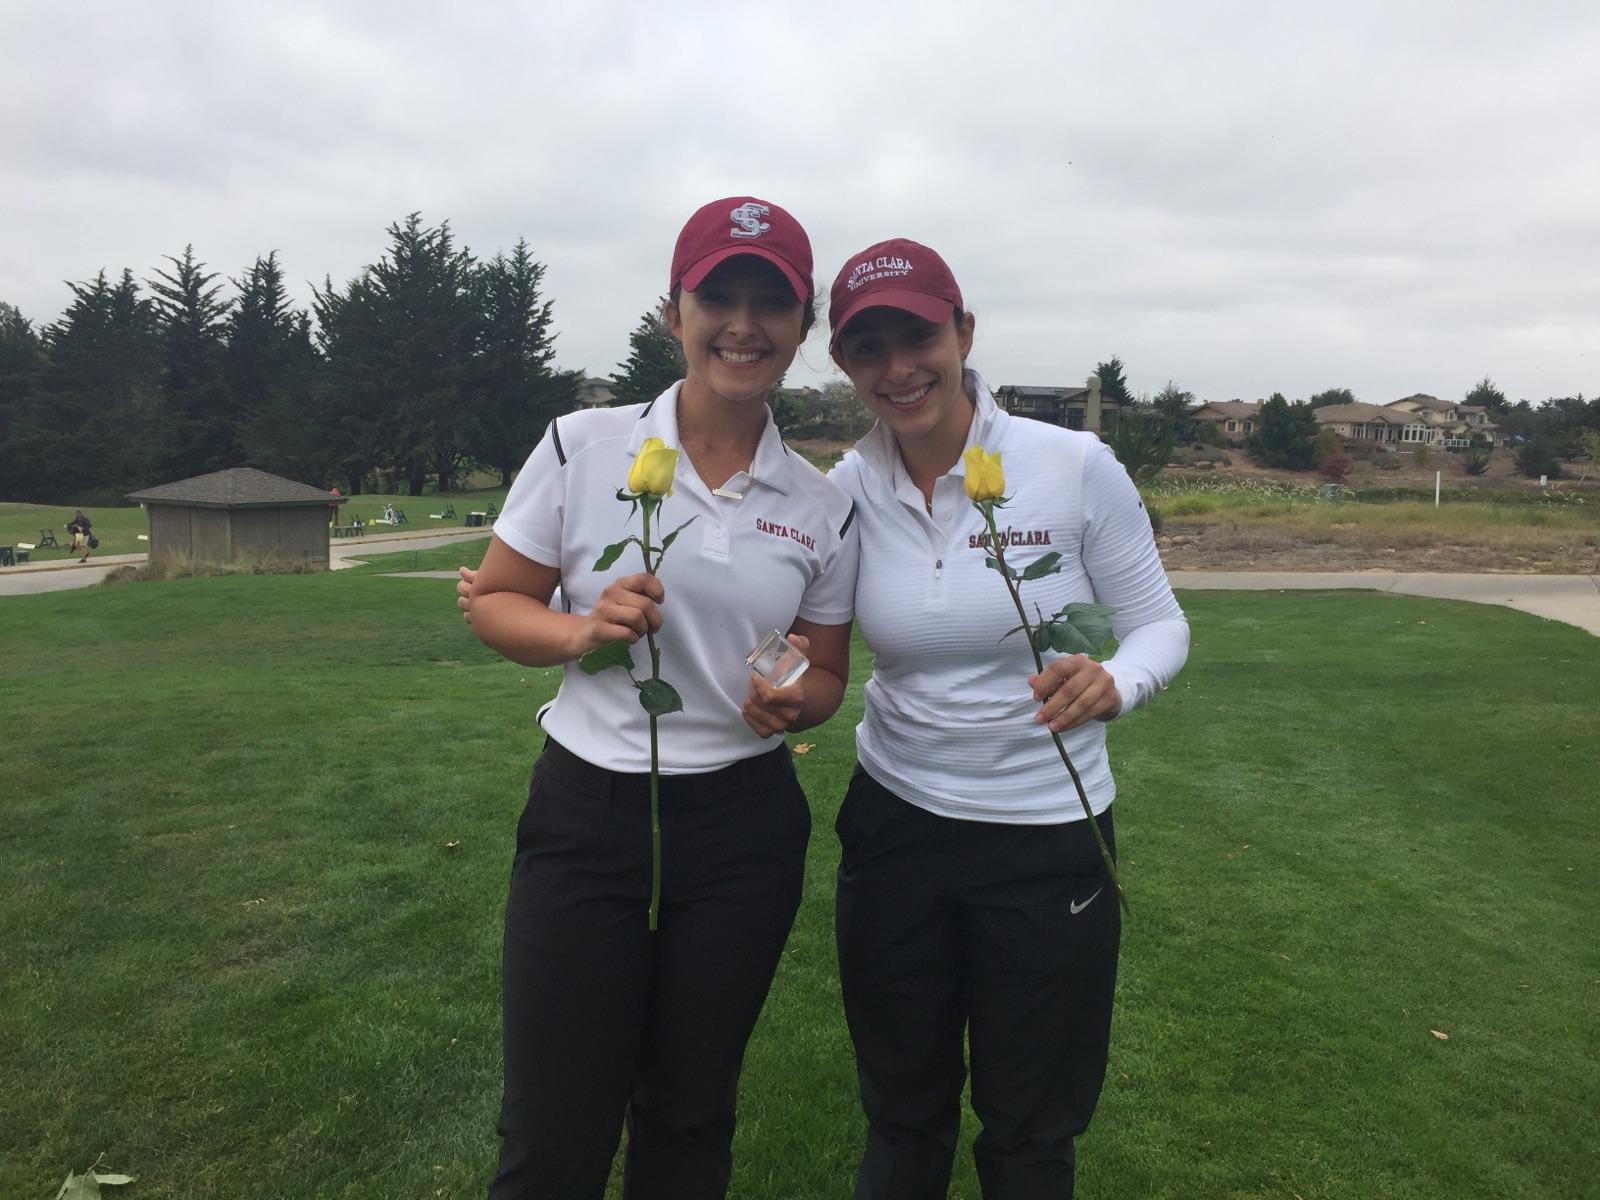 Women's Golf Takes Title at Cal Poly Invitational; Moreno, Murez Tie For Runner-up Honors